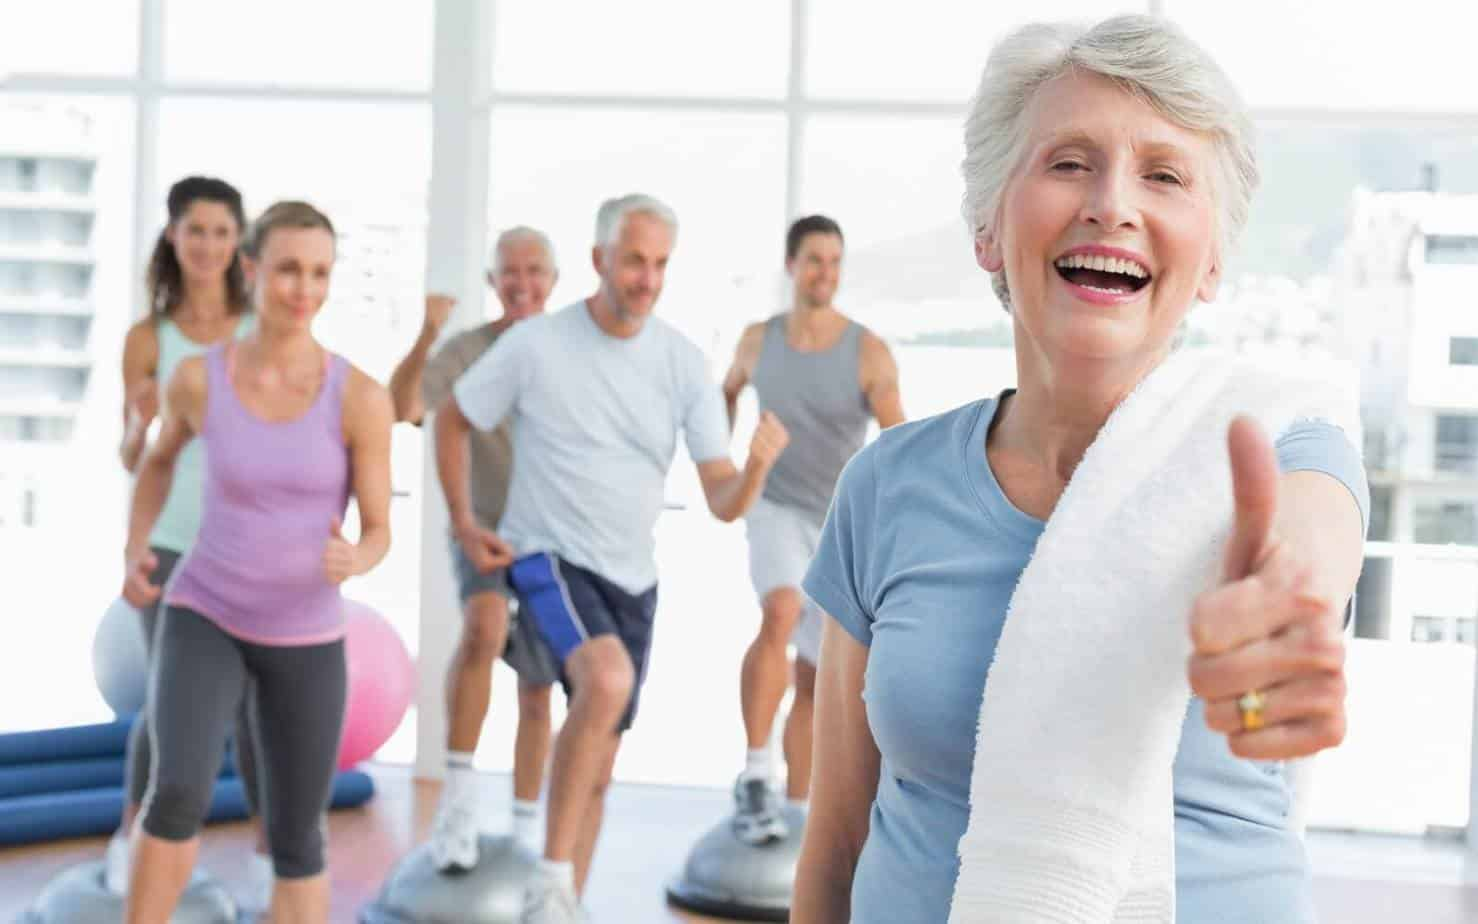 Cheerful senior woman gesturing thumbs up with people doing hiit workout at fitness studio